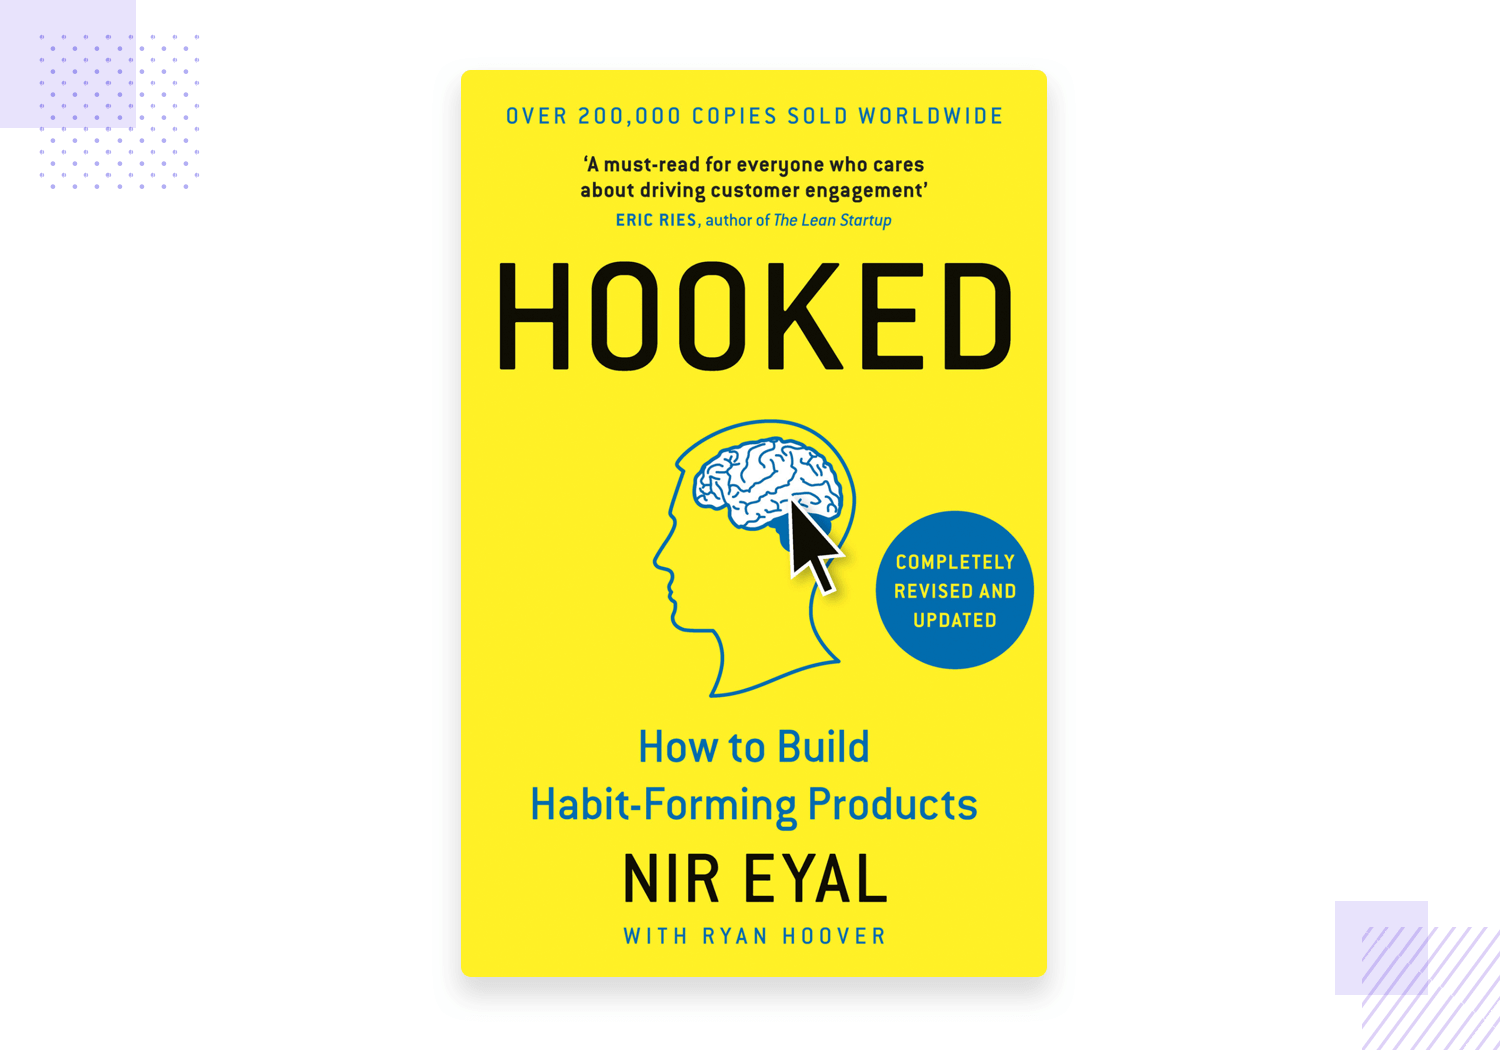 hooked as design book for habit forming products